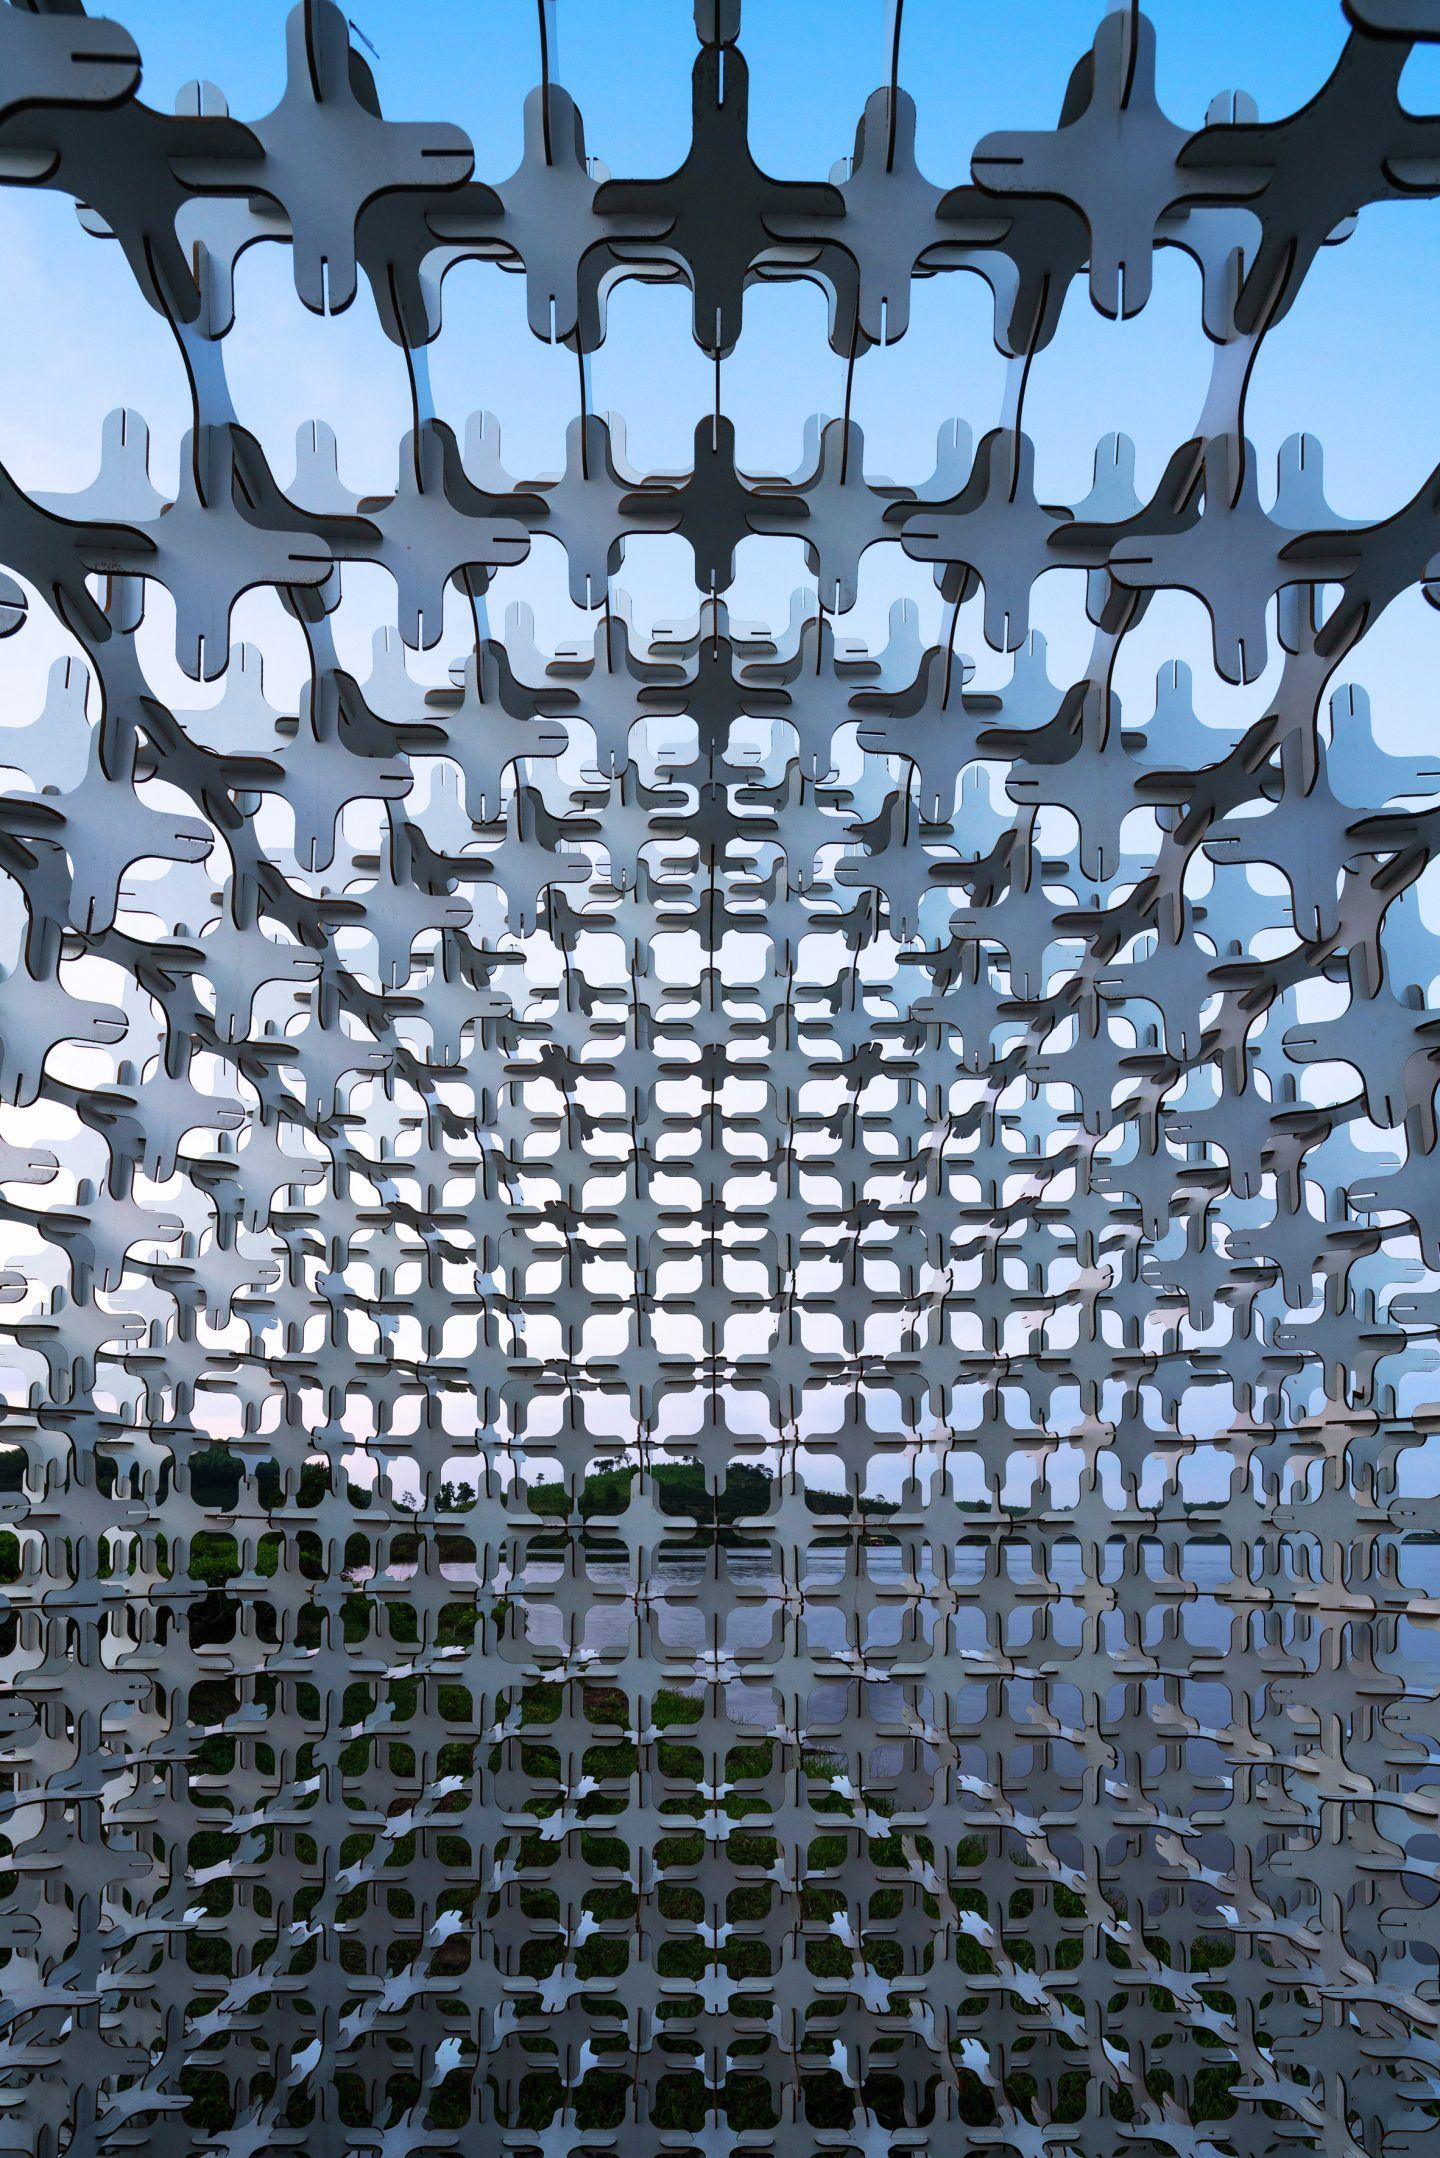 IGNANT-Architecture-NKPA-Dang-And-Partners-Pavilion-5